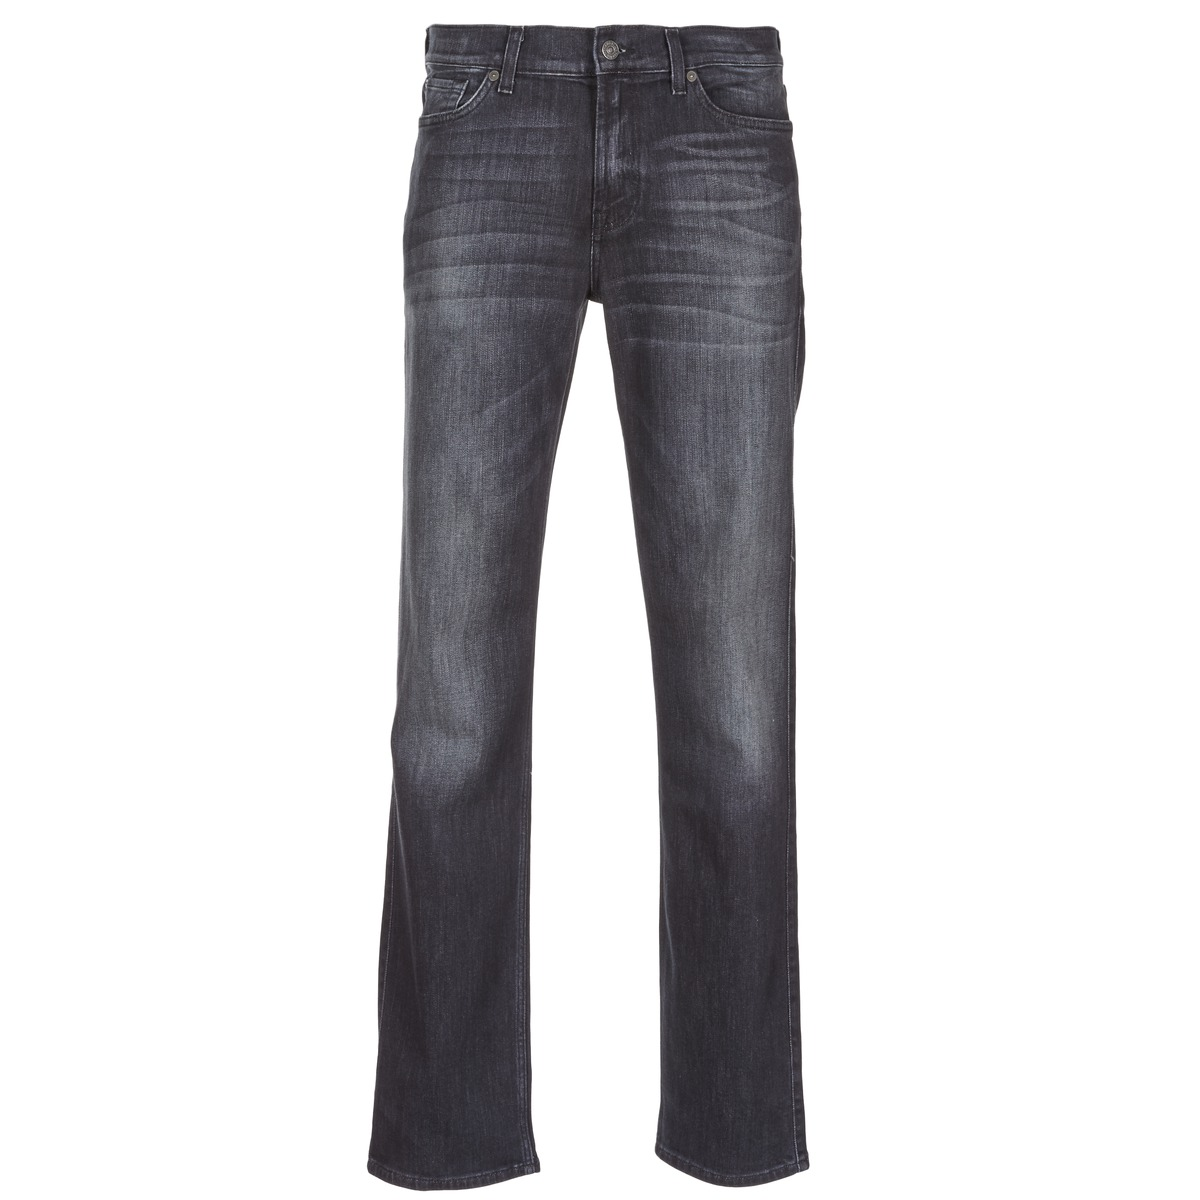 7 for all Mankind SLIMMY LUXE PERFORMANCE Grau